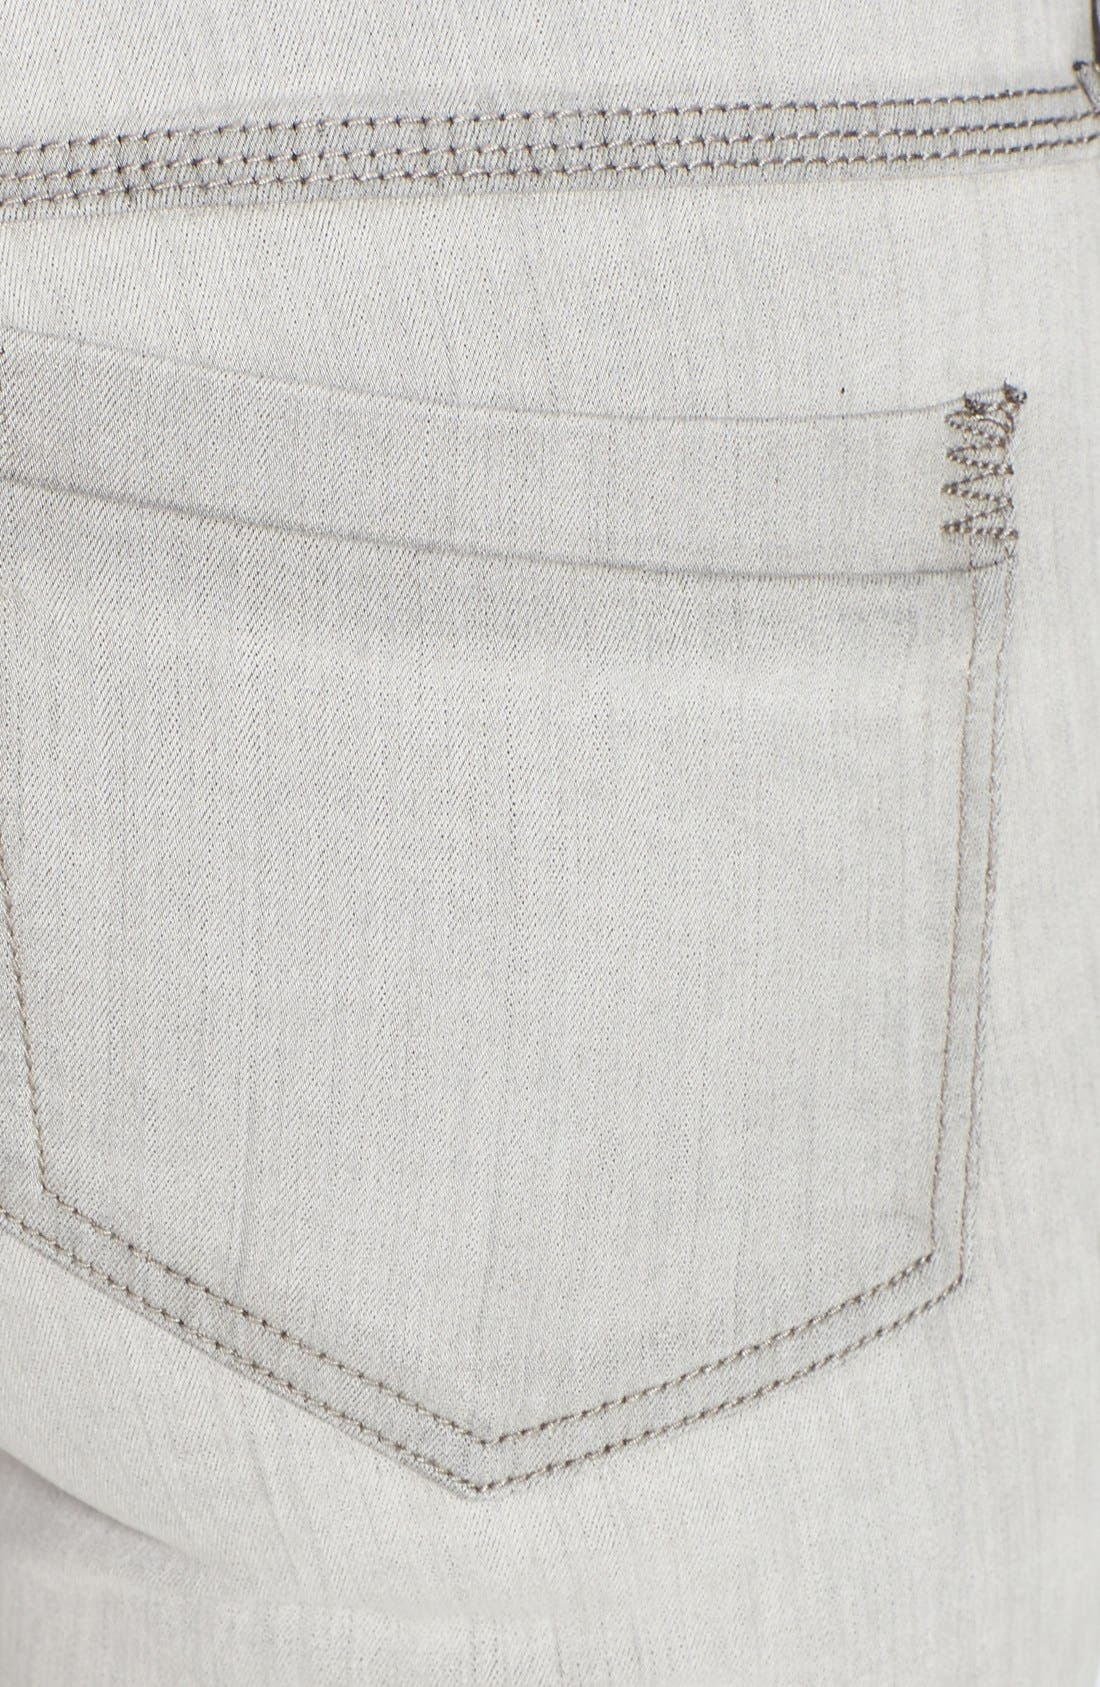 Alternate Image 3  - Free People Stretch Skinny Jeans (Cloudy Grey)